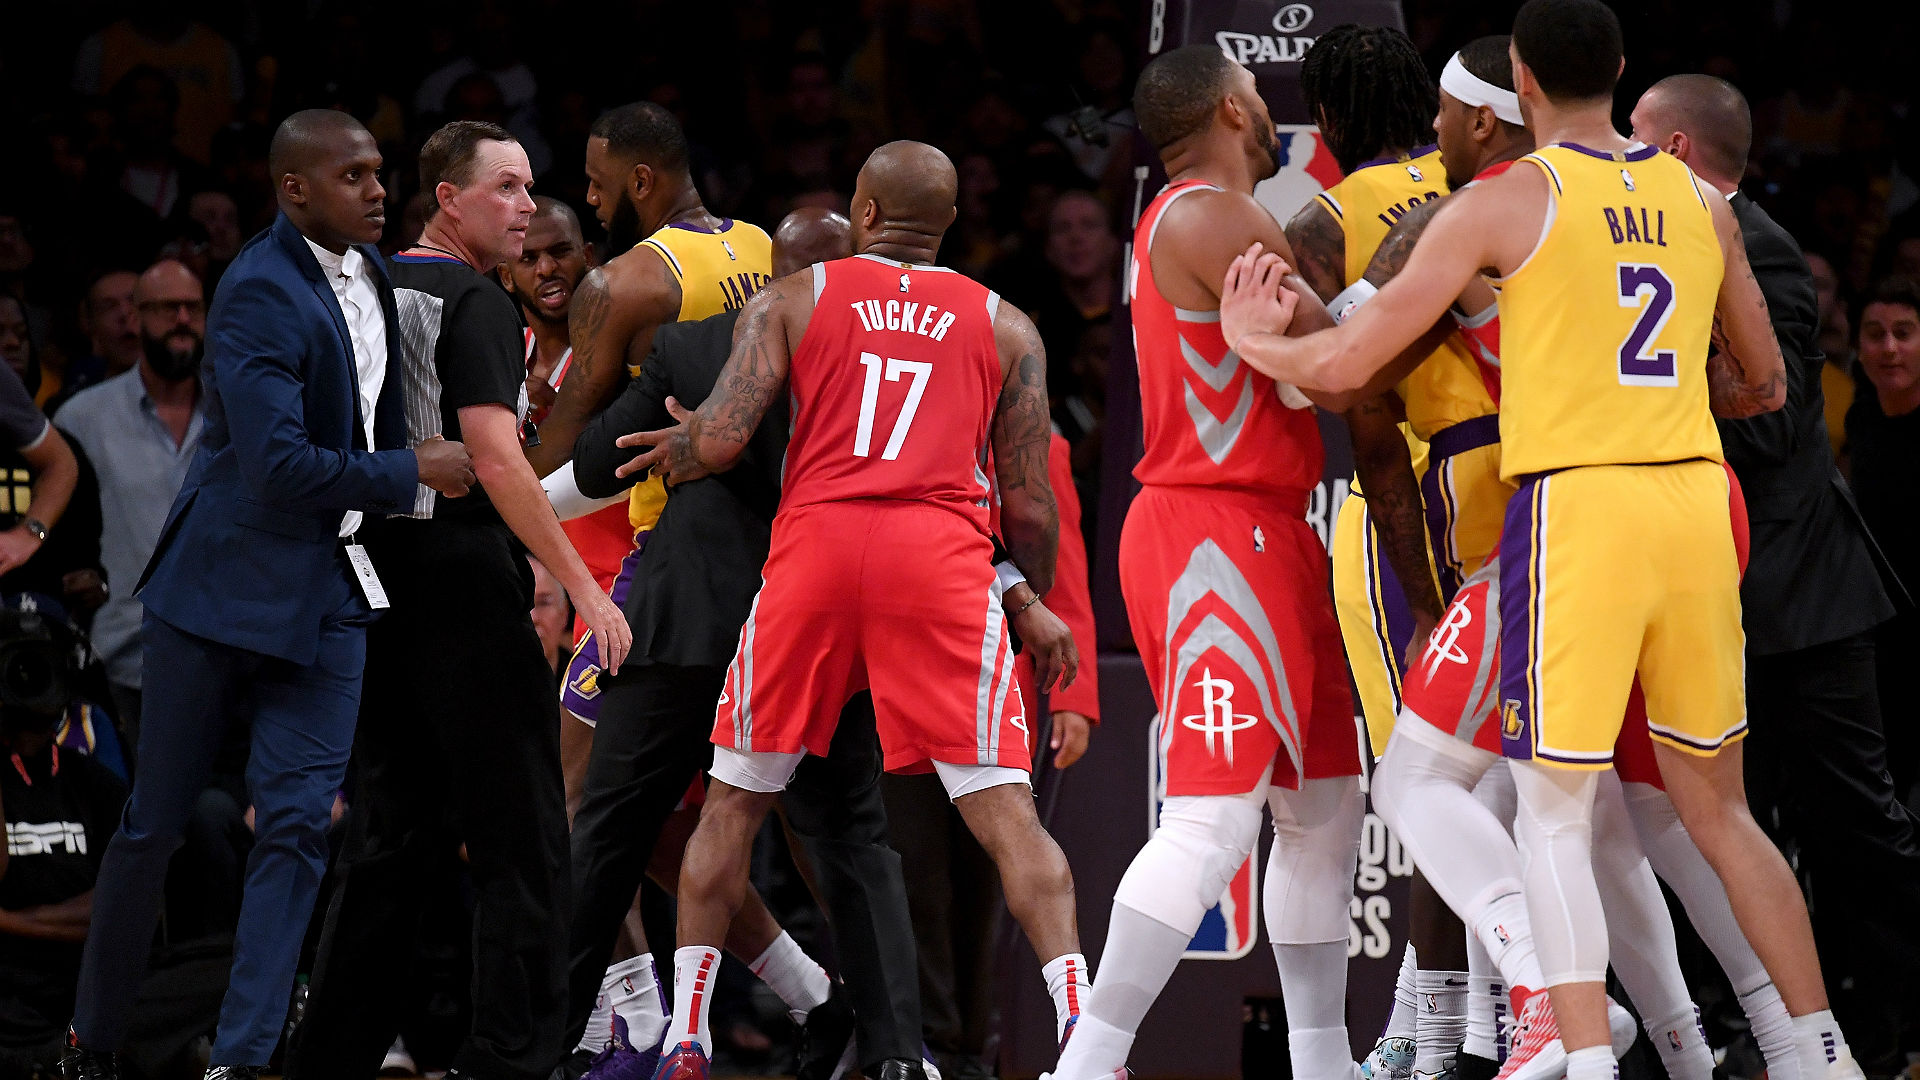 Lakers-rockets-usnews-102118-ftr-getty_178o4w5plqdd61rlghuq214khr